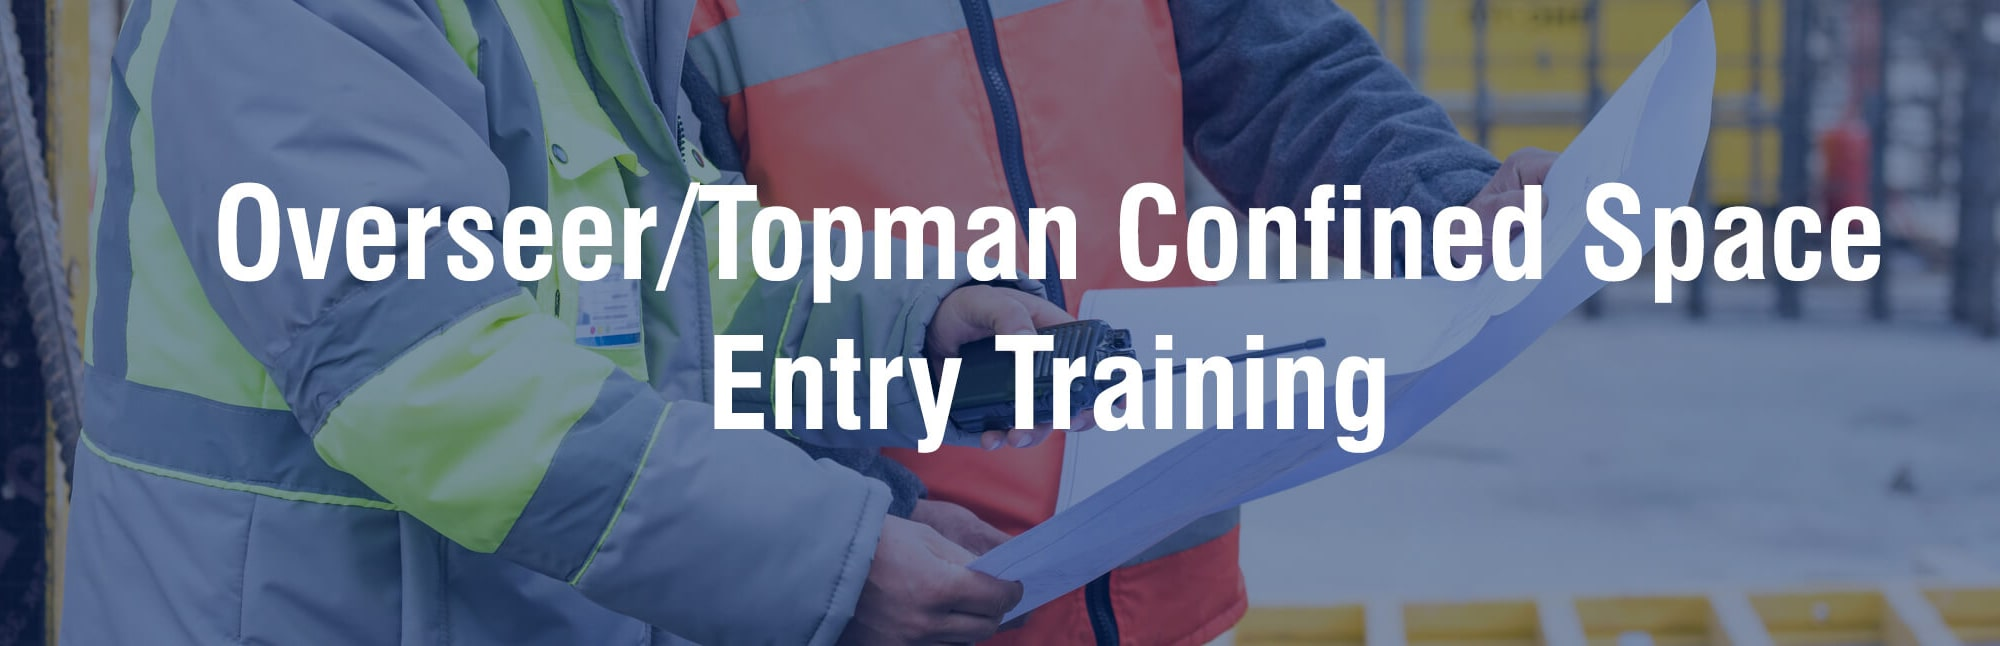 Overseer-Topman Confined Space Entry Training | Reece Safety